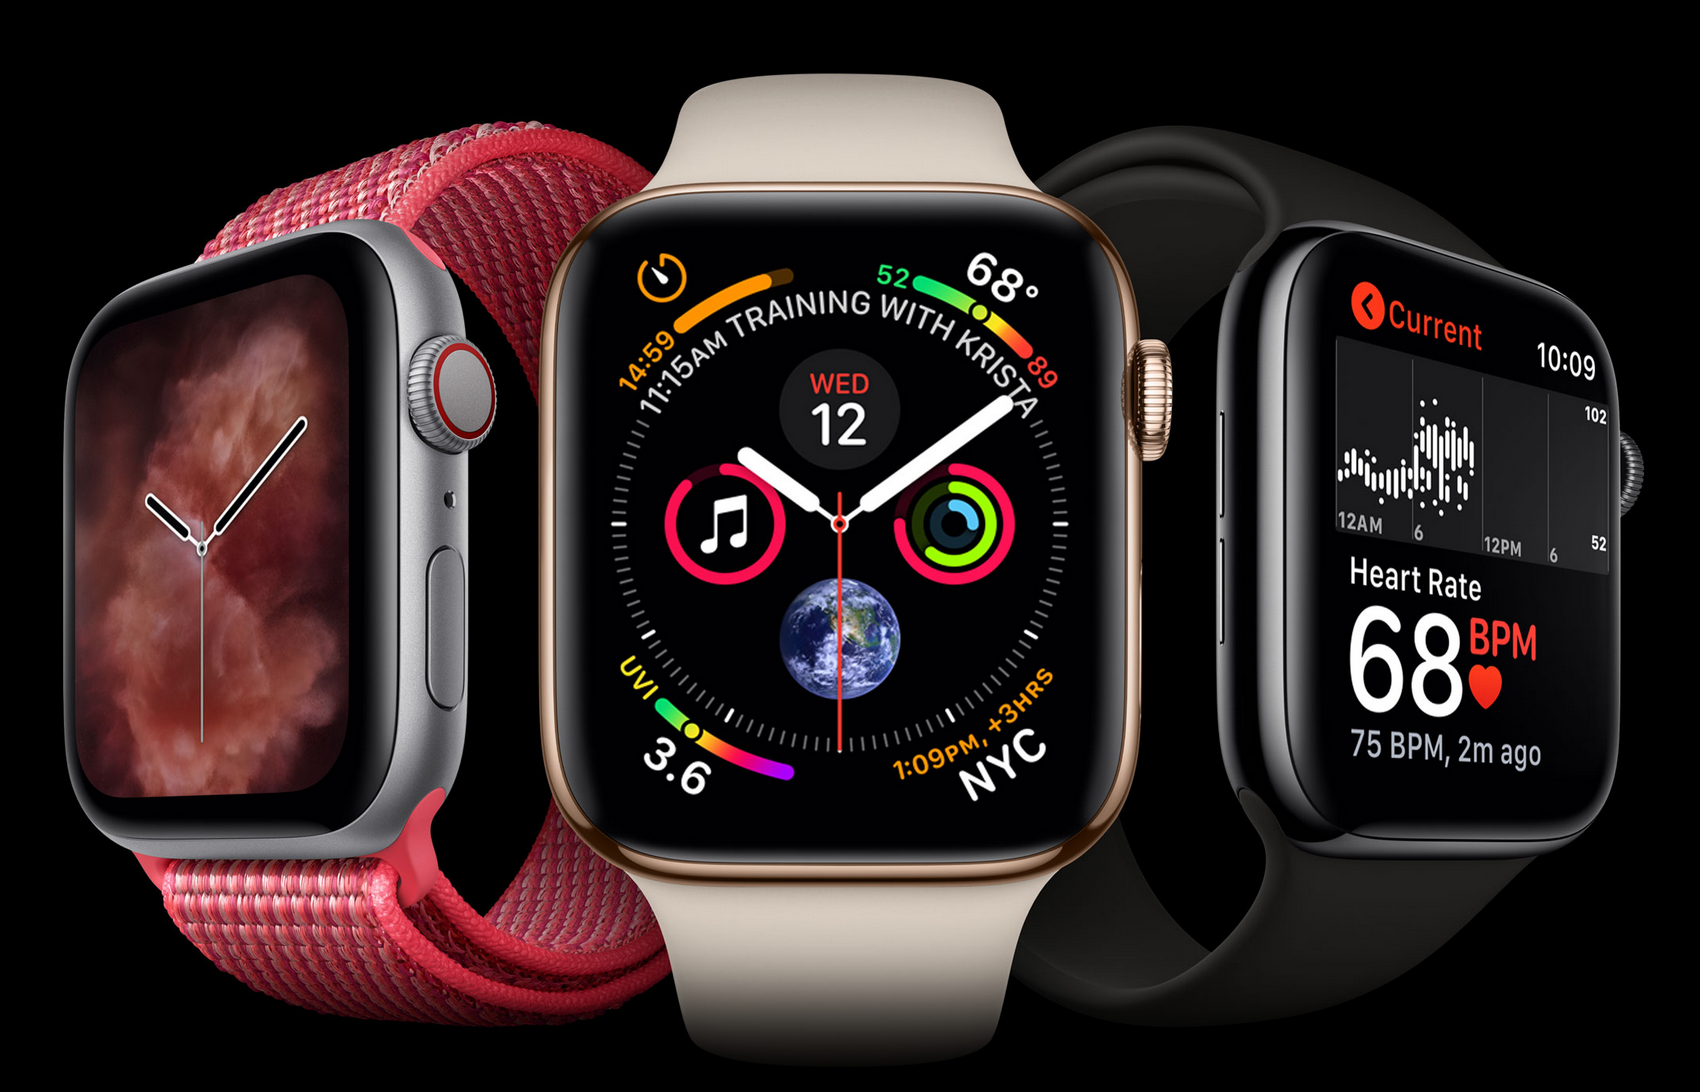 New Apple iPhone and watch releases are here! Pictured here: the new apple watch series 4